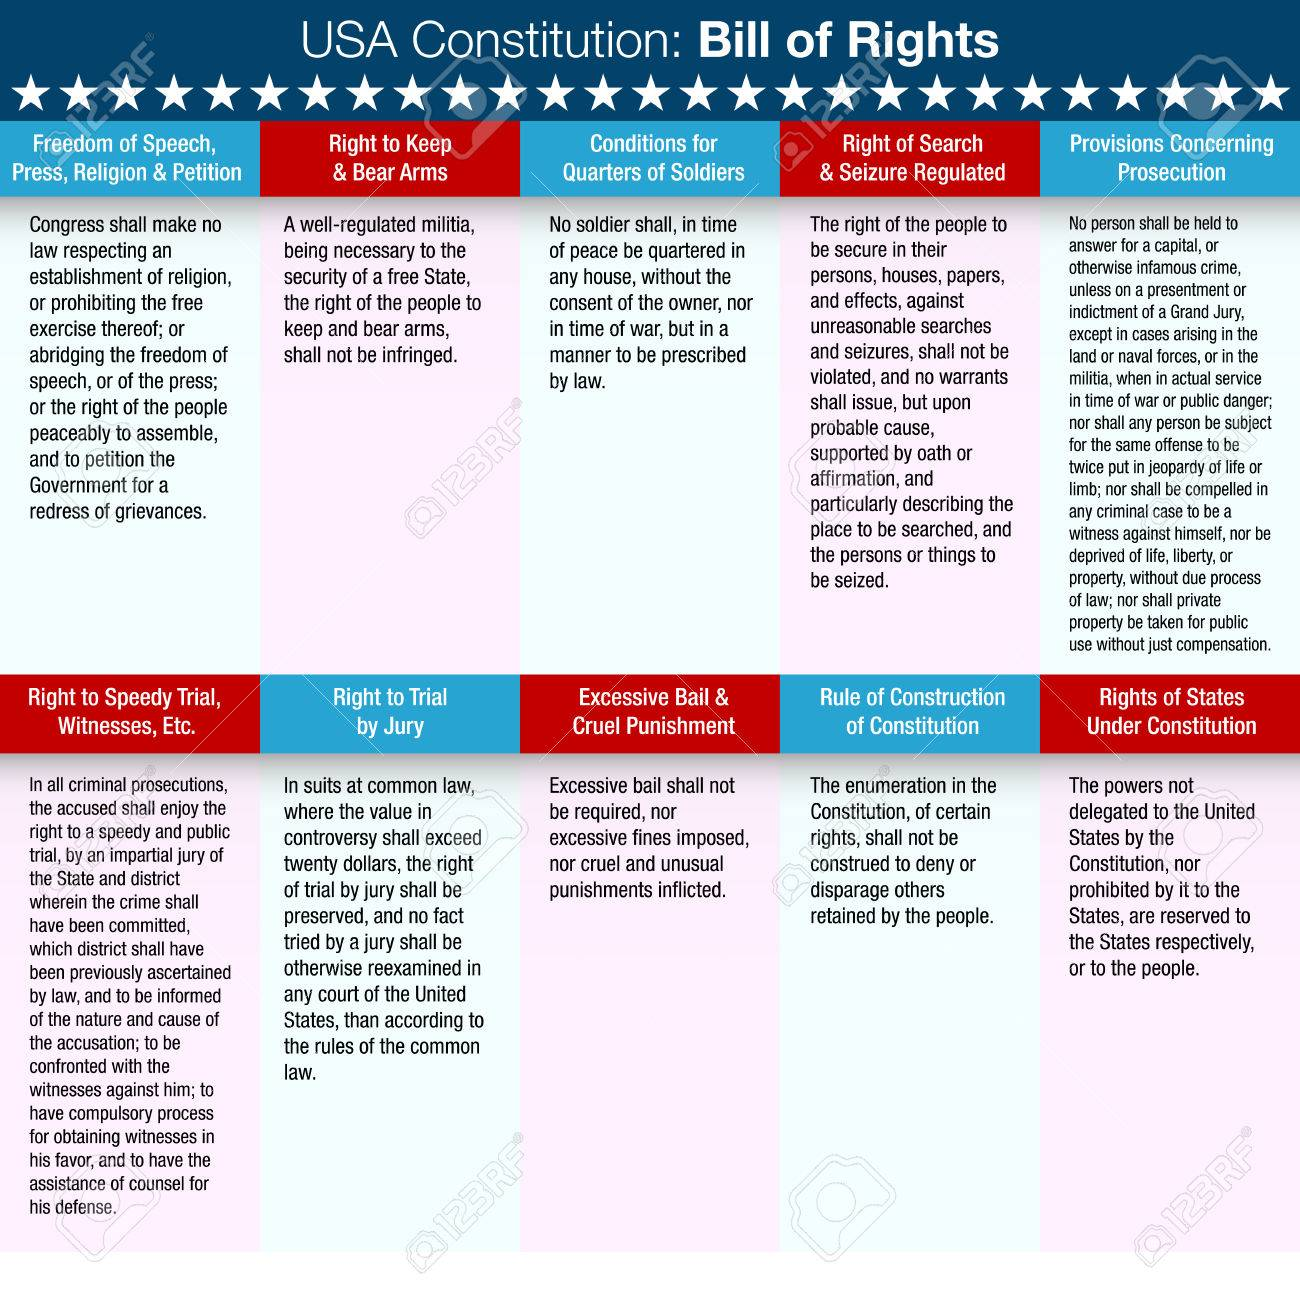 list of the united states constitution bill of rights. royalty free